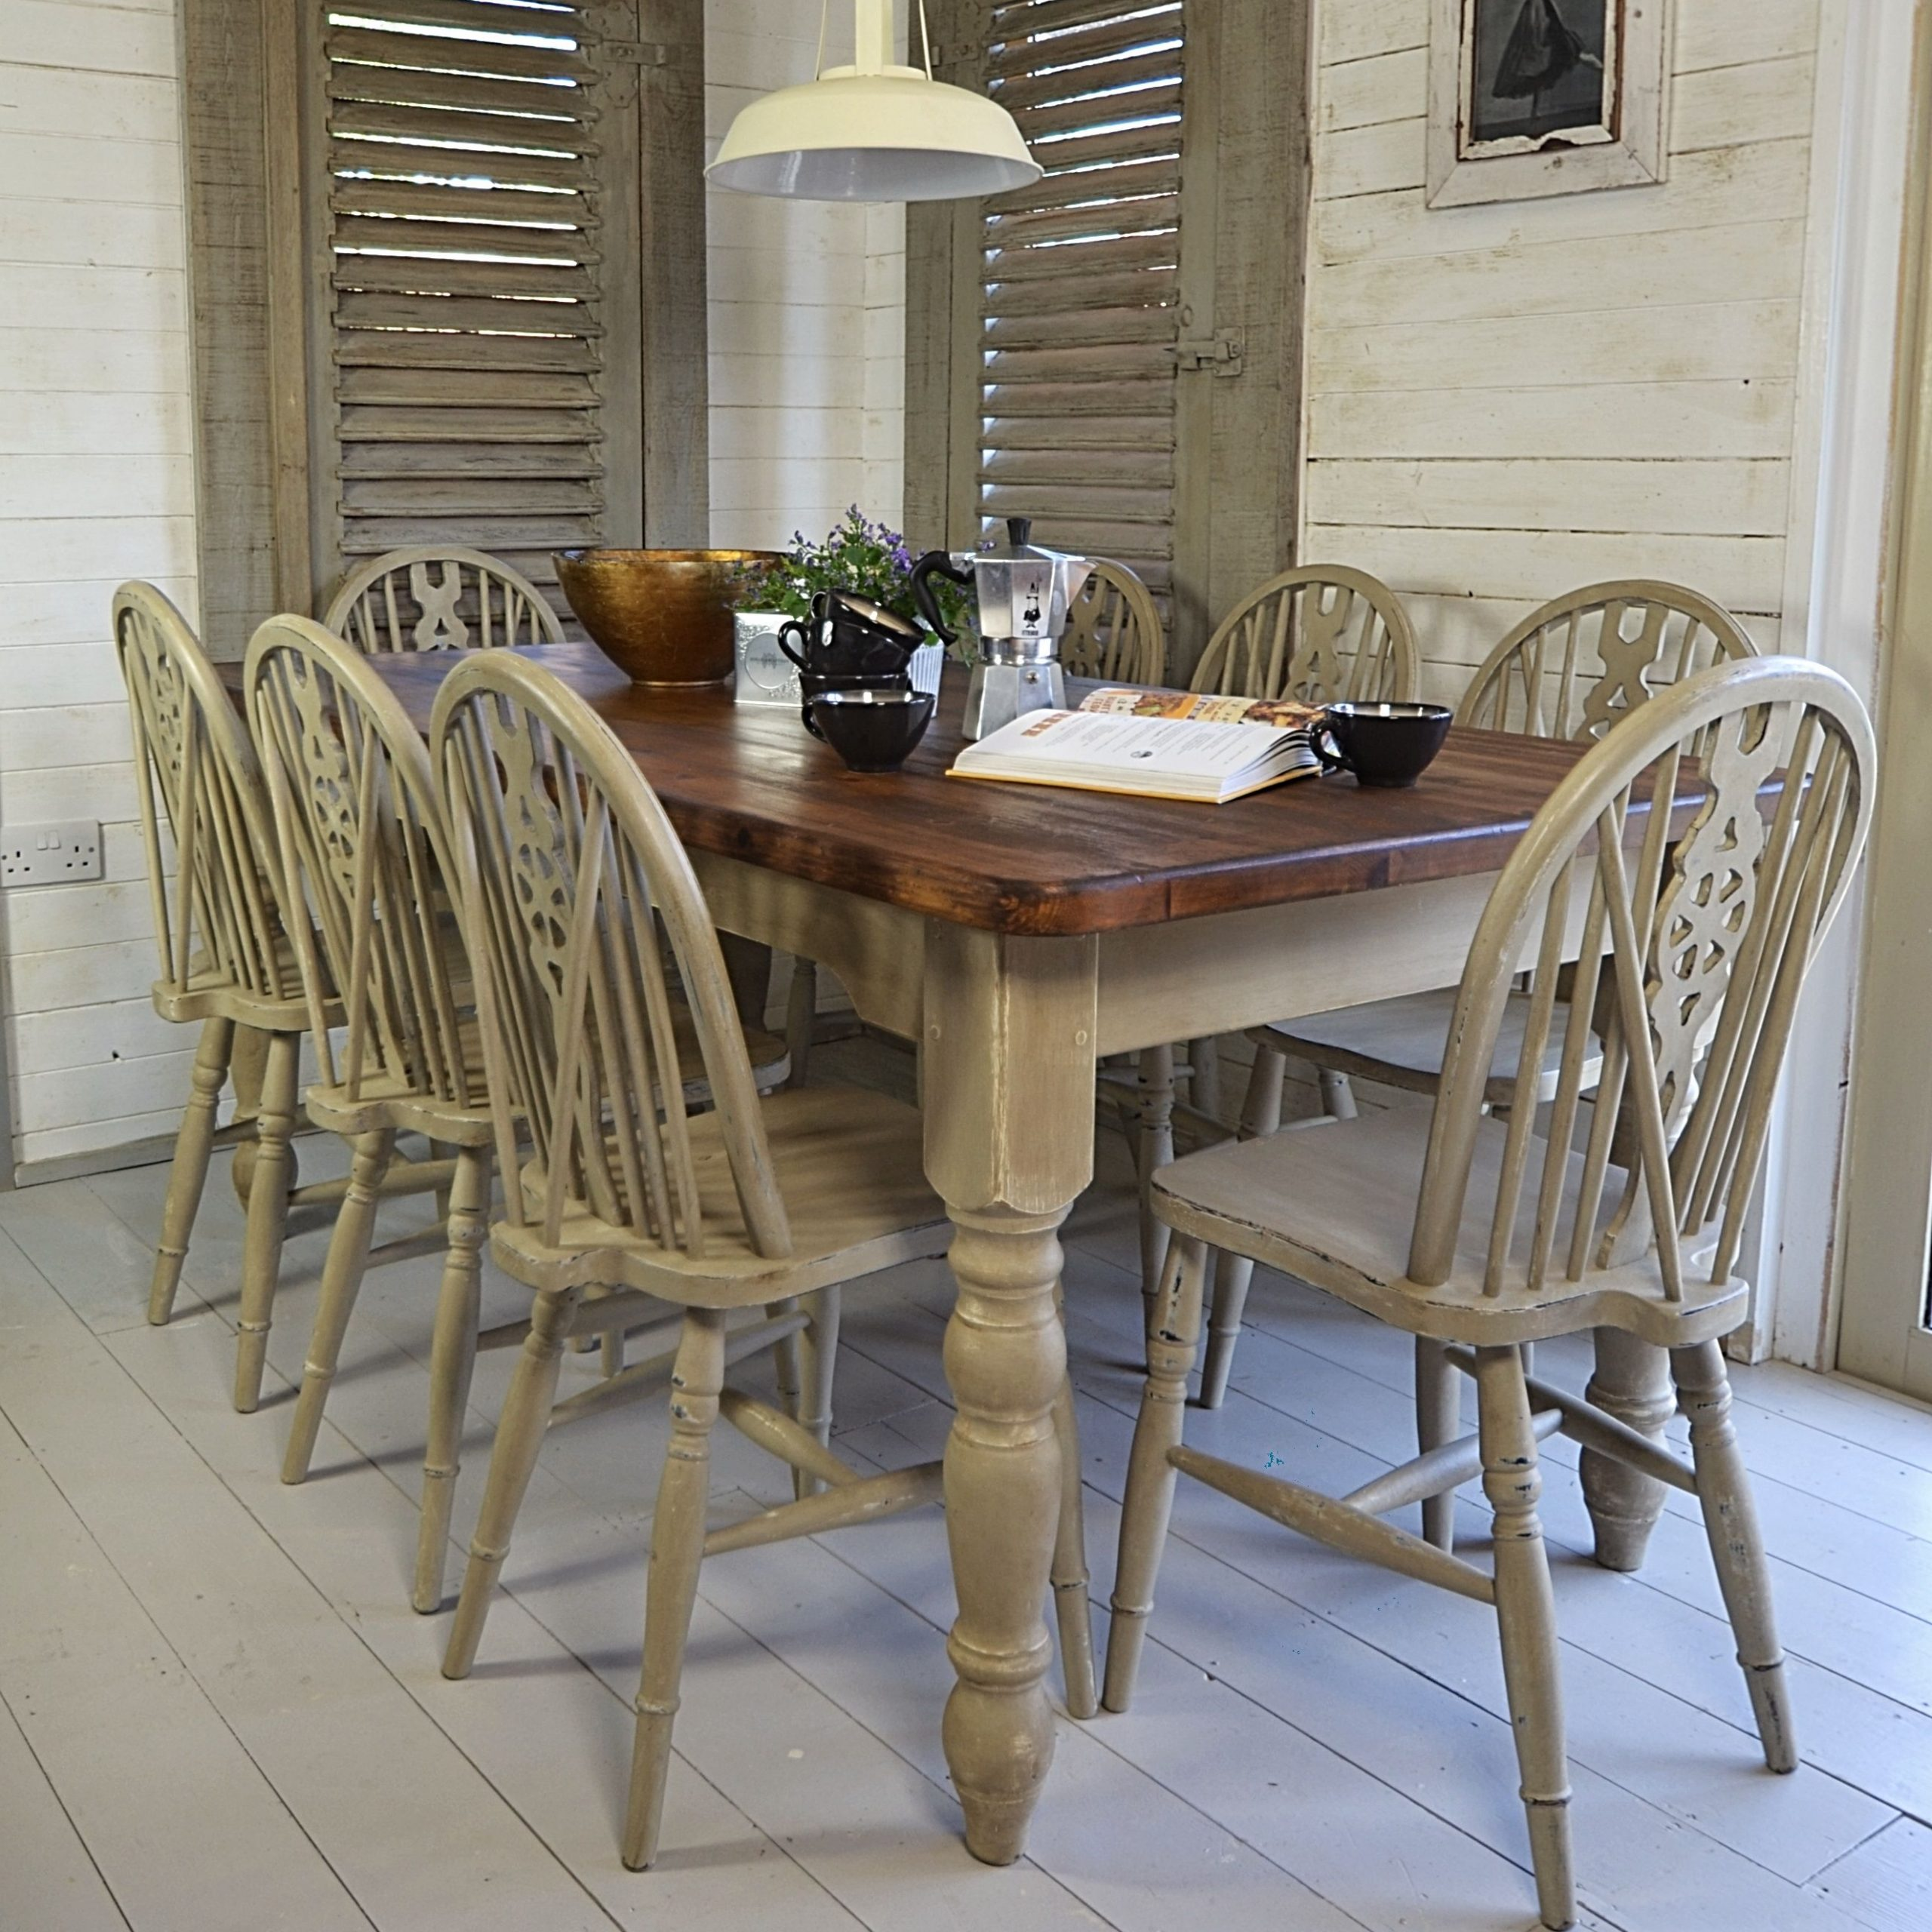 Rustic Shabby Chic Dining Table With 8 Wheelback Chairs For Favorite Large Rustic Look Dining Tables (View 2 of 25)